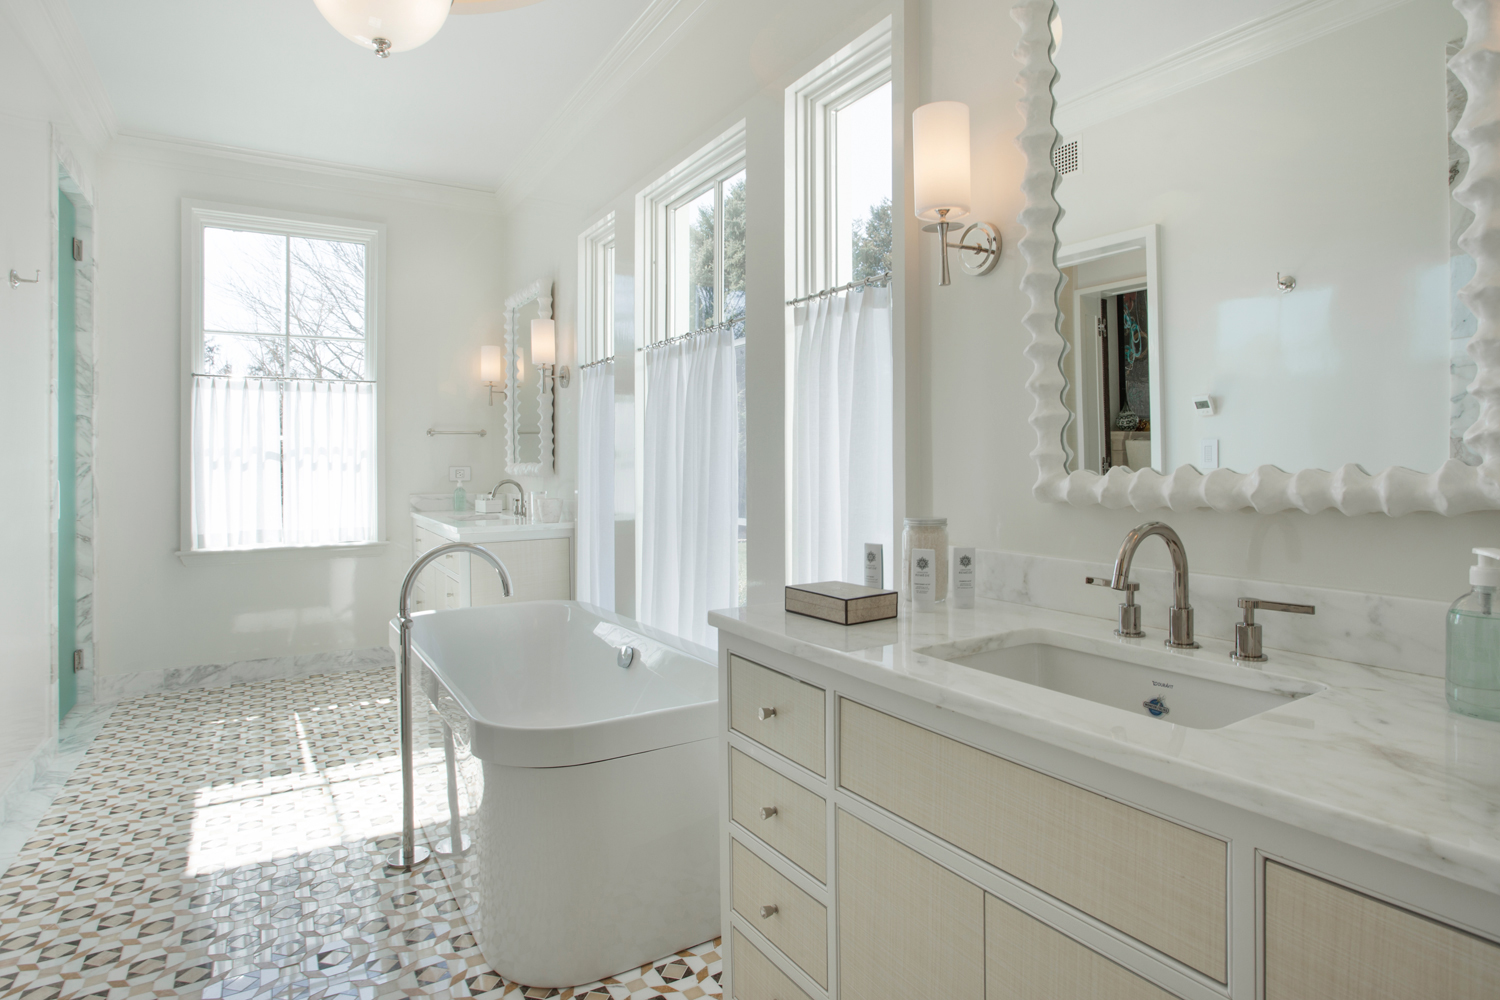 <span>1st floor guest master bathroom</span><span  class='incontracts'>IN CONTRACT </span>